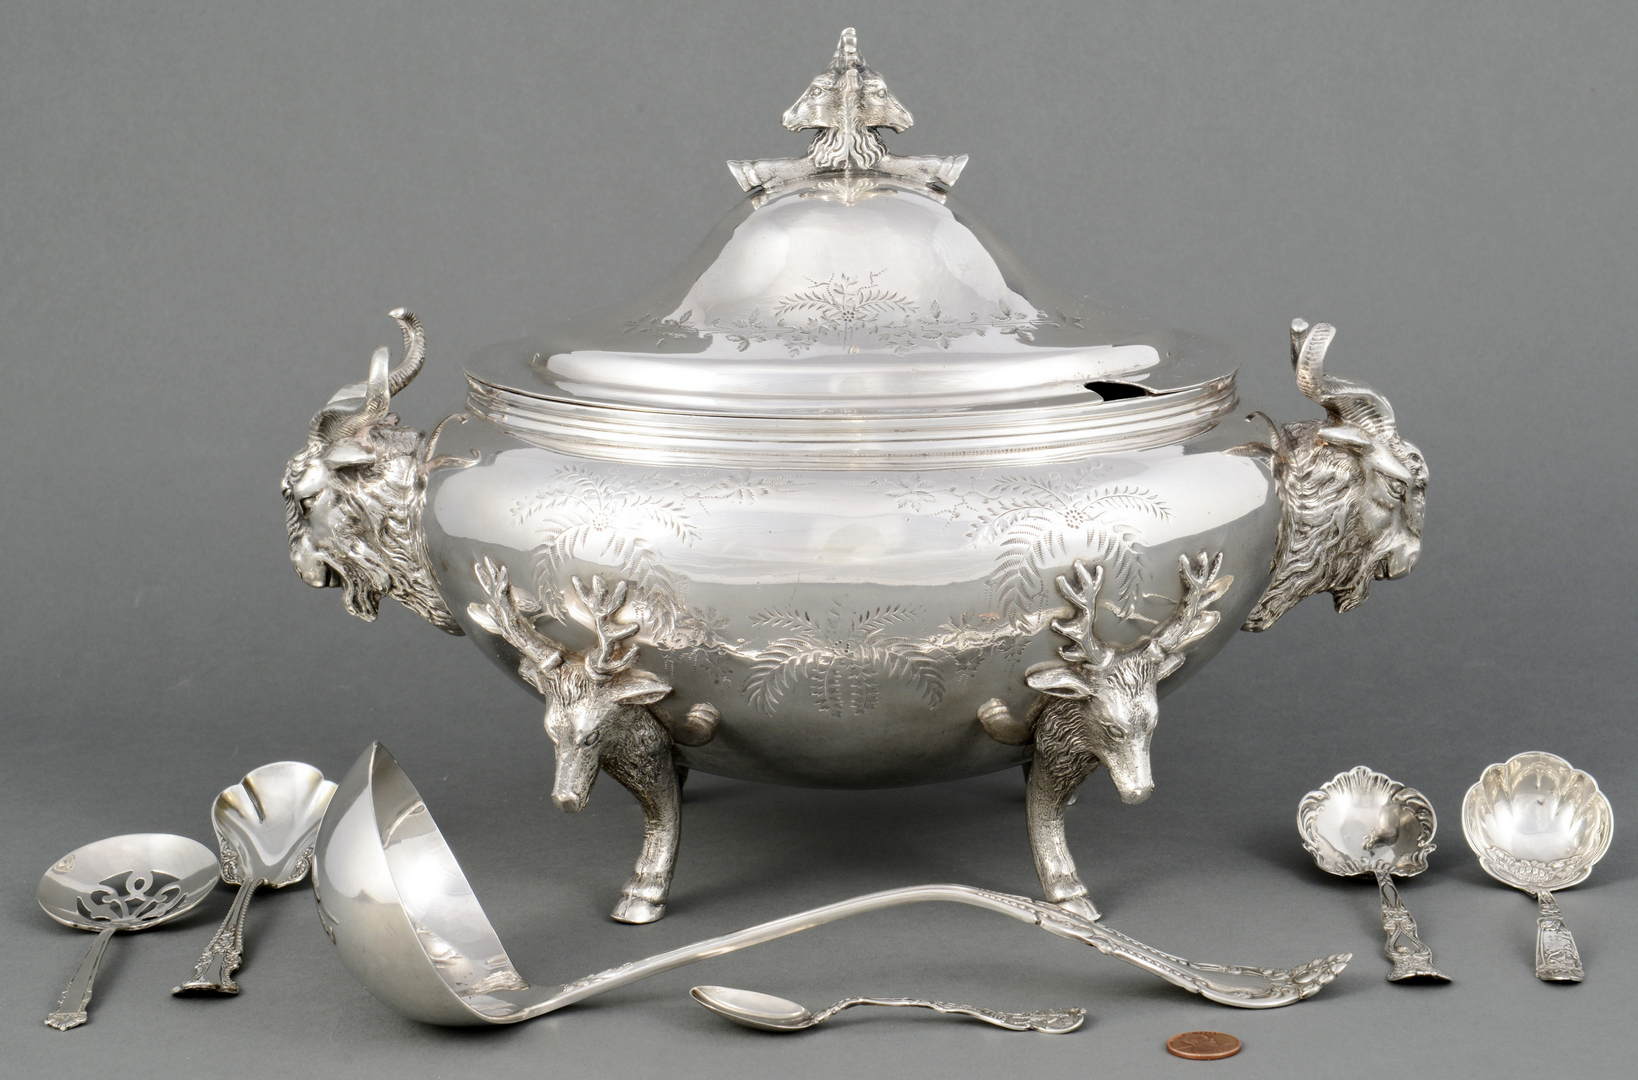 Lot 3088210: Meriden Stag Head Tureen plus silver flatware